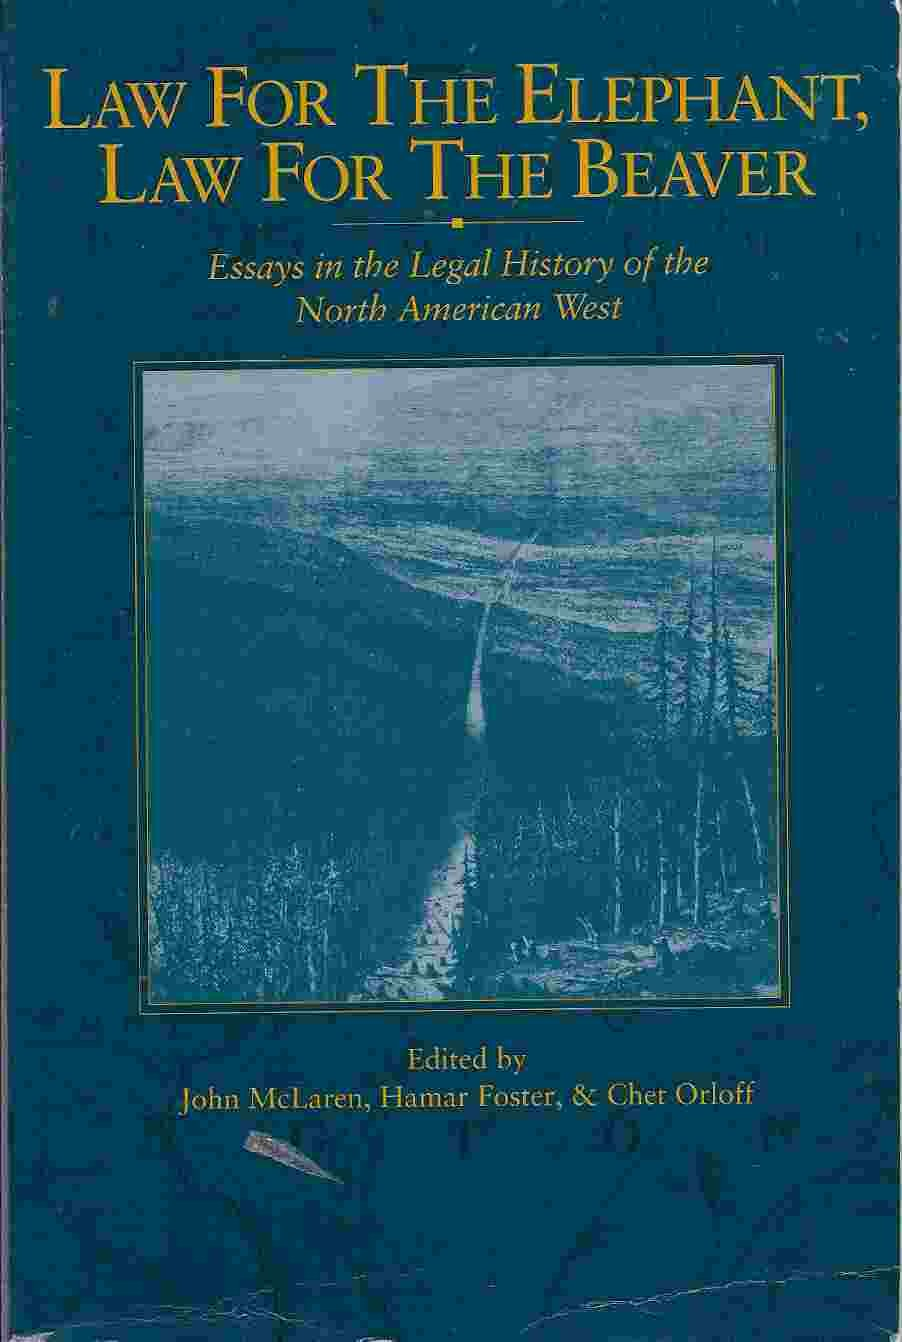 Image for Law for the Elephant, Law for the Beaver: Essays in the Legal History of the North American West (Cpp, 23)